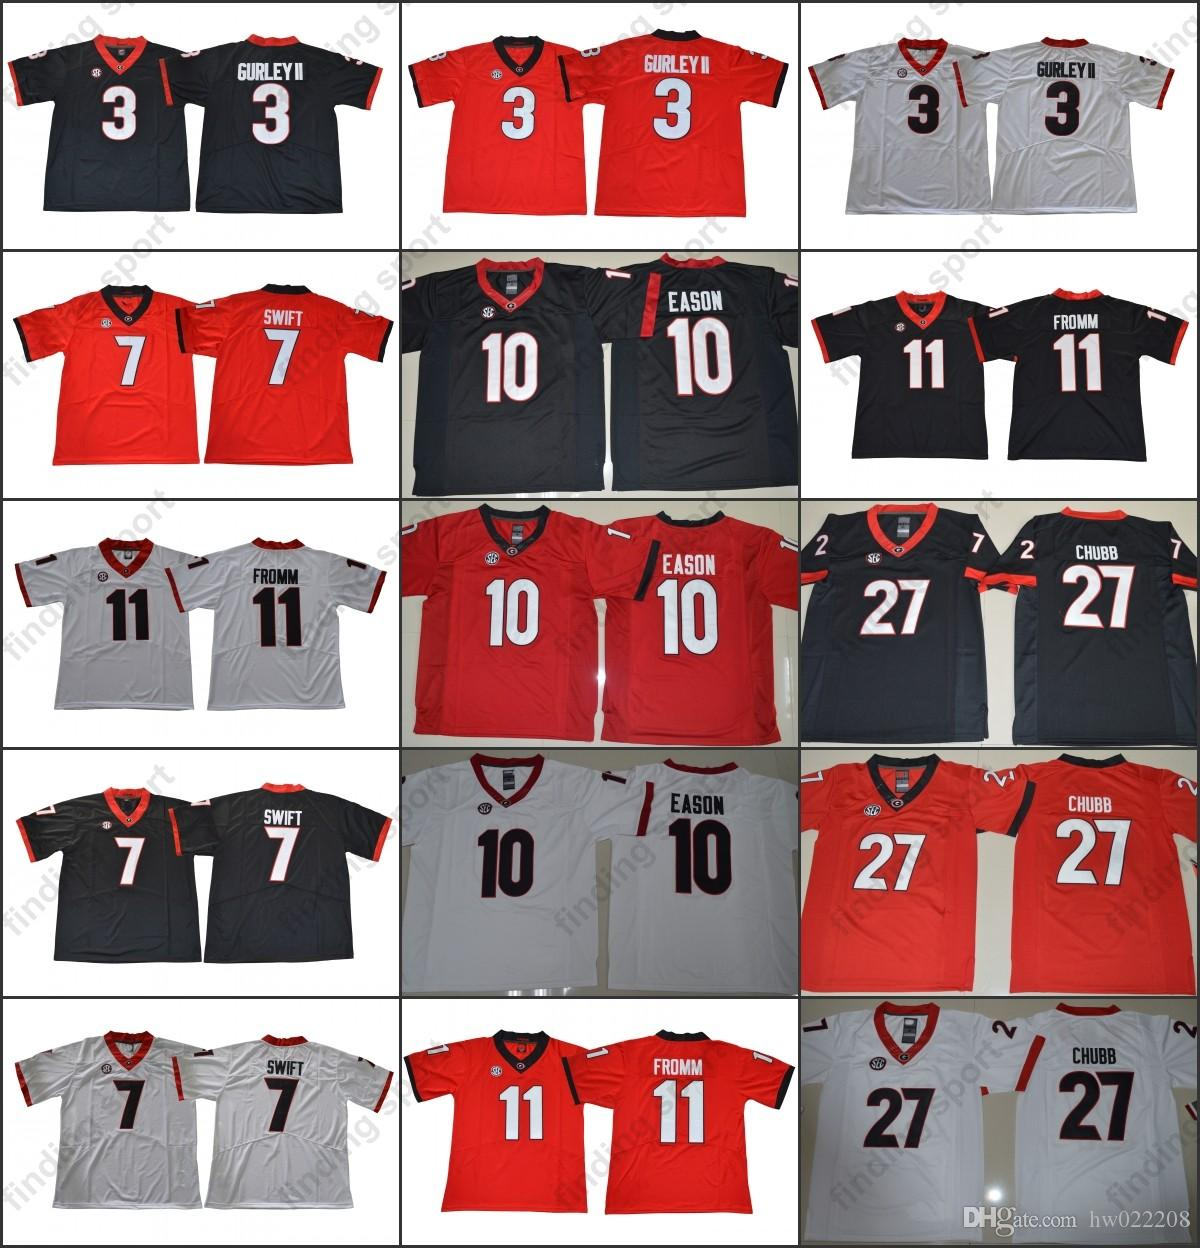 d3fc0a975 NCAA Georgia Bulldogs Football Jerseys Jake Fromm Nick Chubb DAndre Swift  Roquan Smith Black Red White 2018 Rose Bowl Championship Online with   18.94 Piece ...